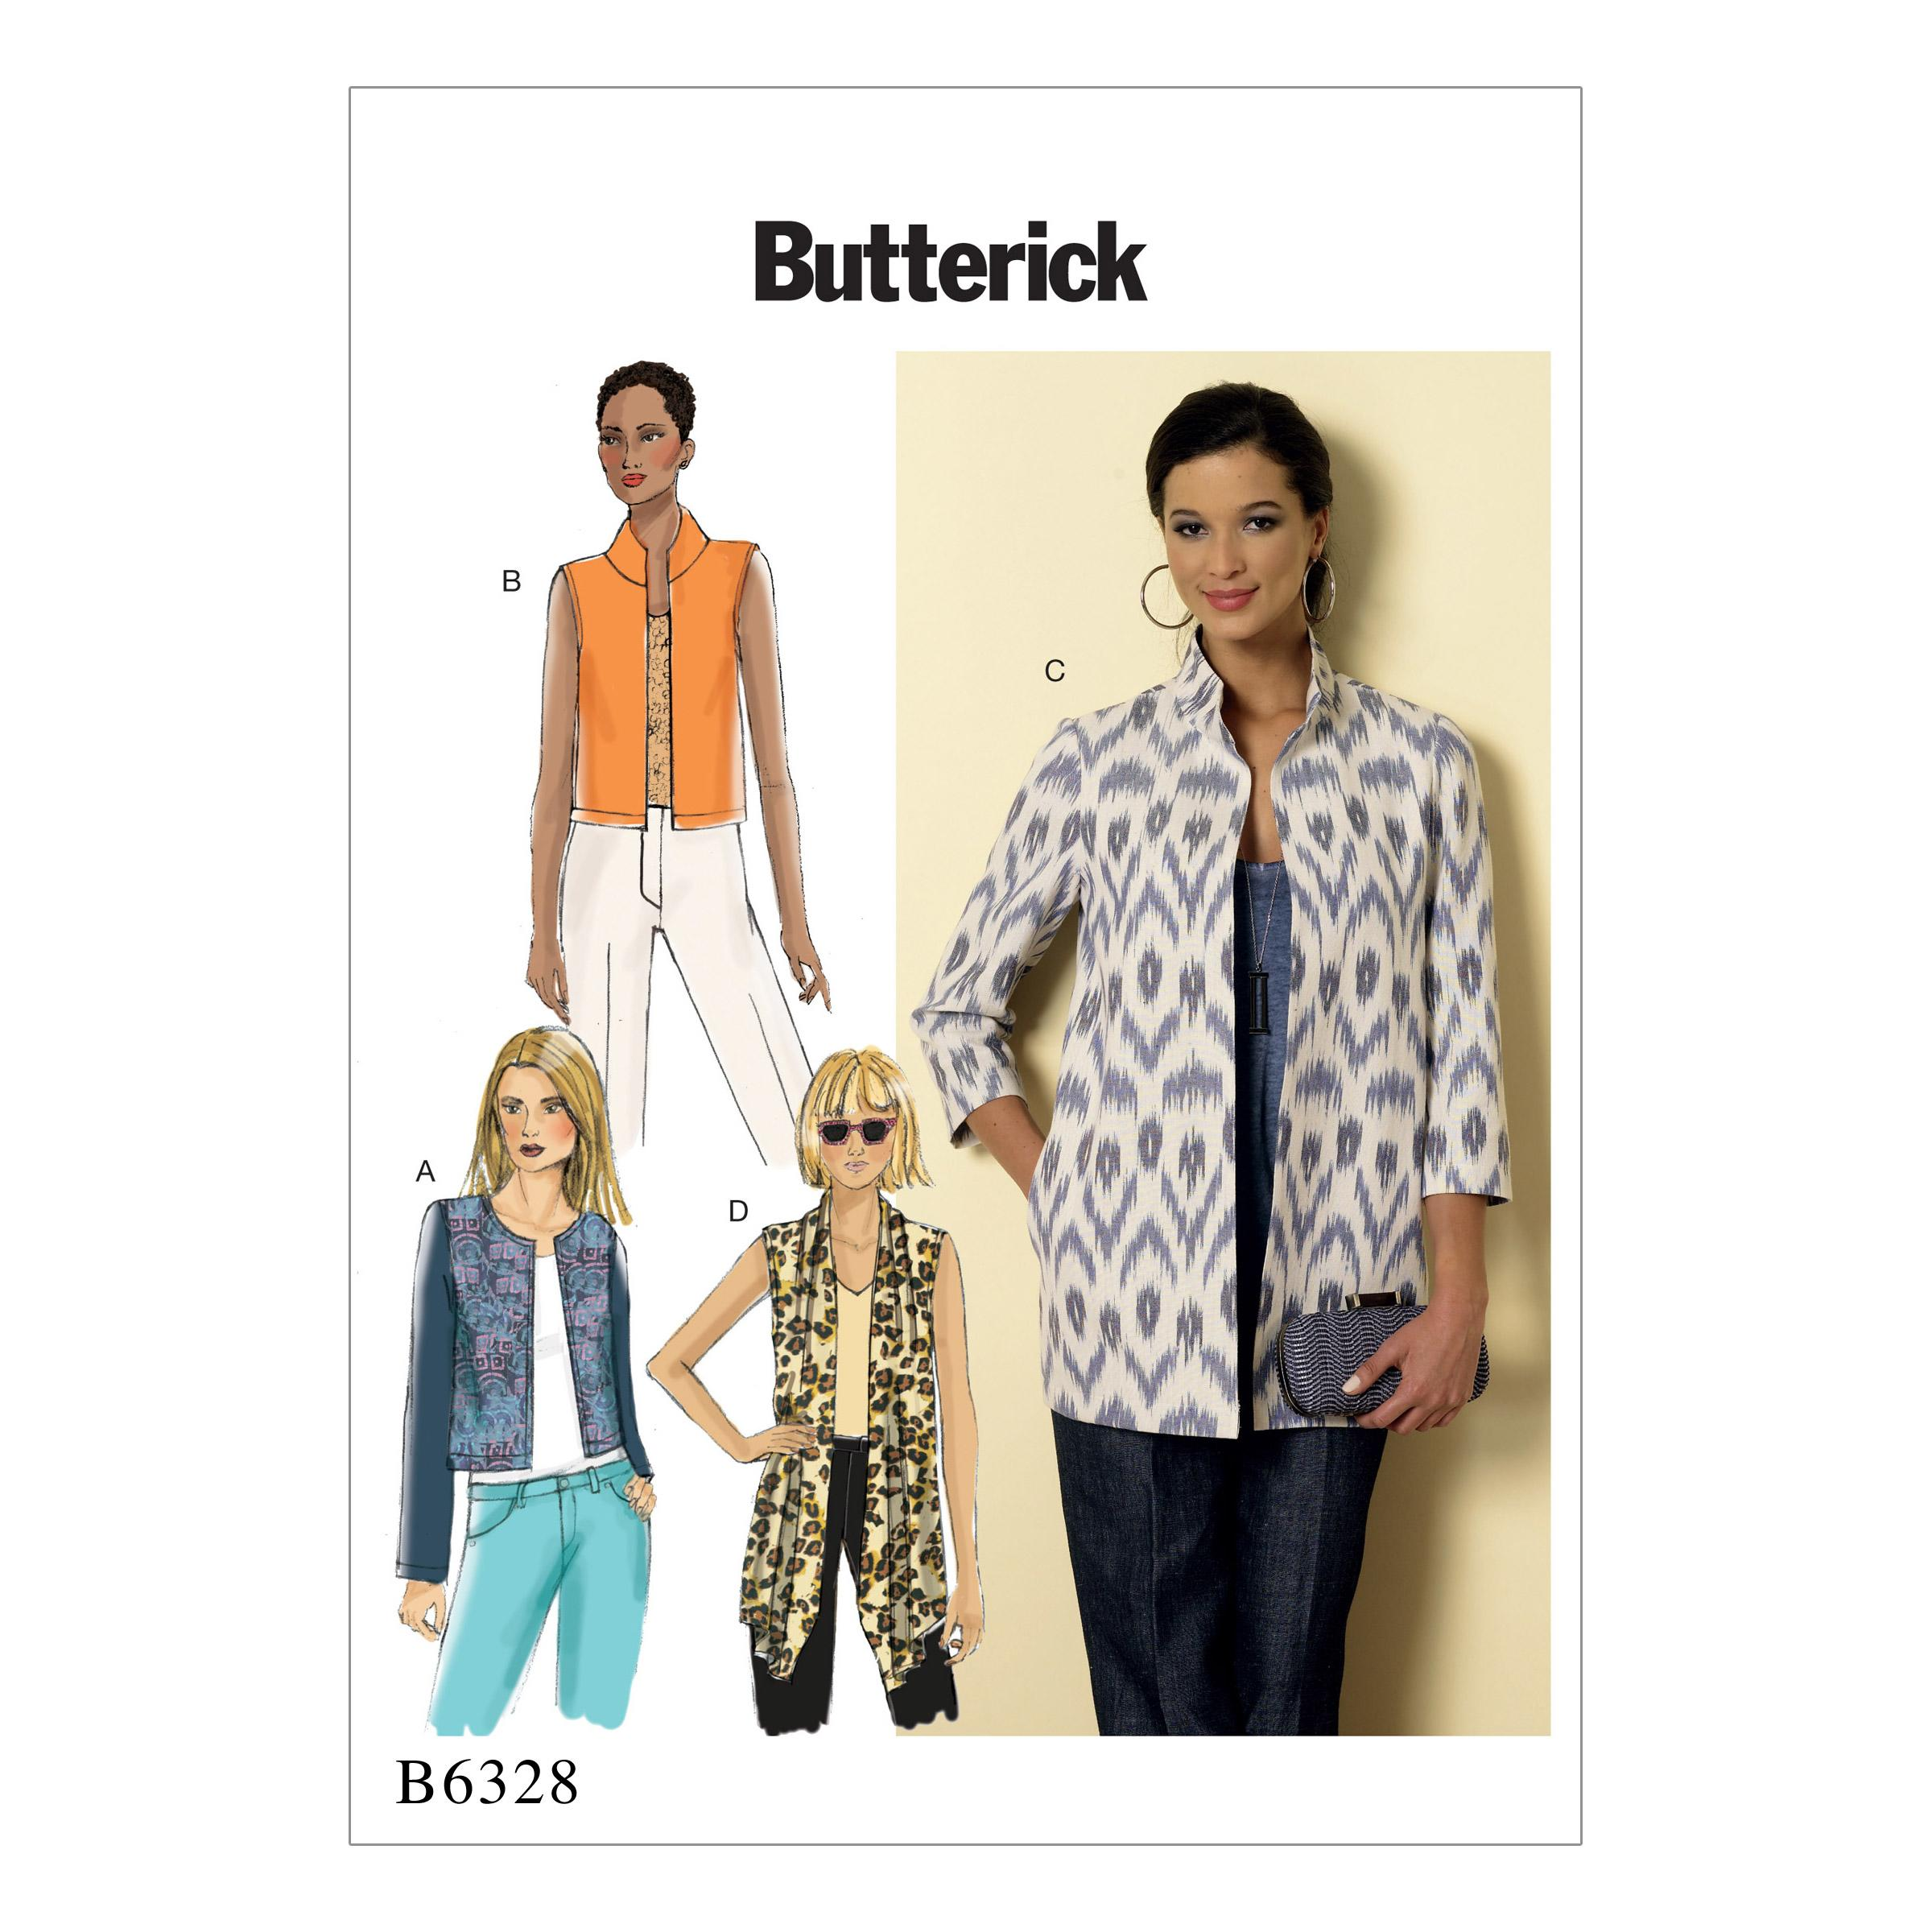 Butterick B6328 Misses' Open-Front Jackets